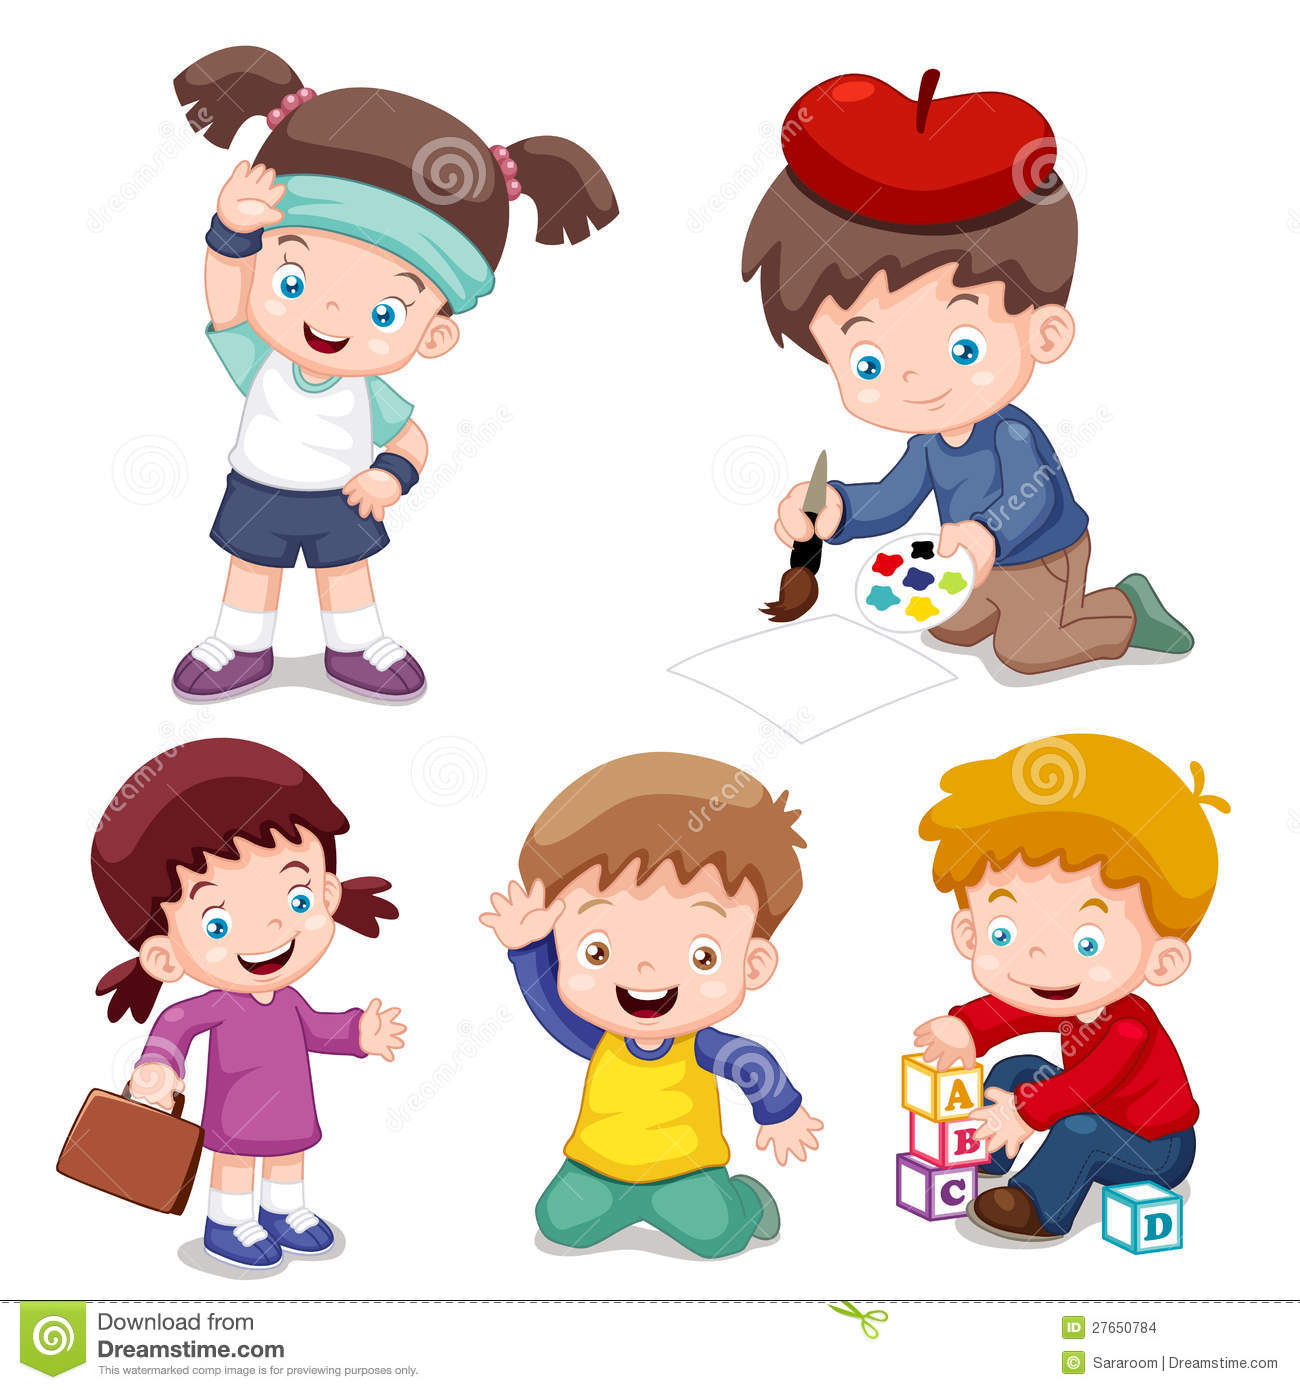 Cartoon Characters For Kids : The gallery for gt images of cartoon characters kids